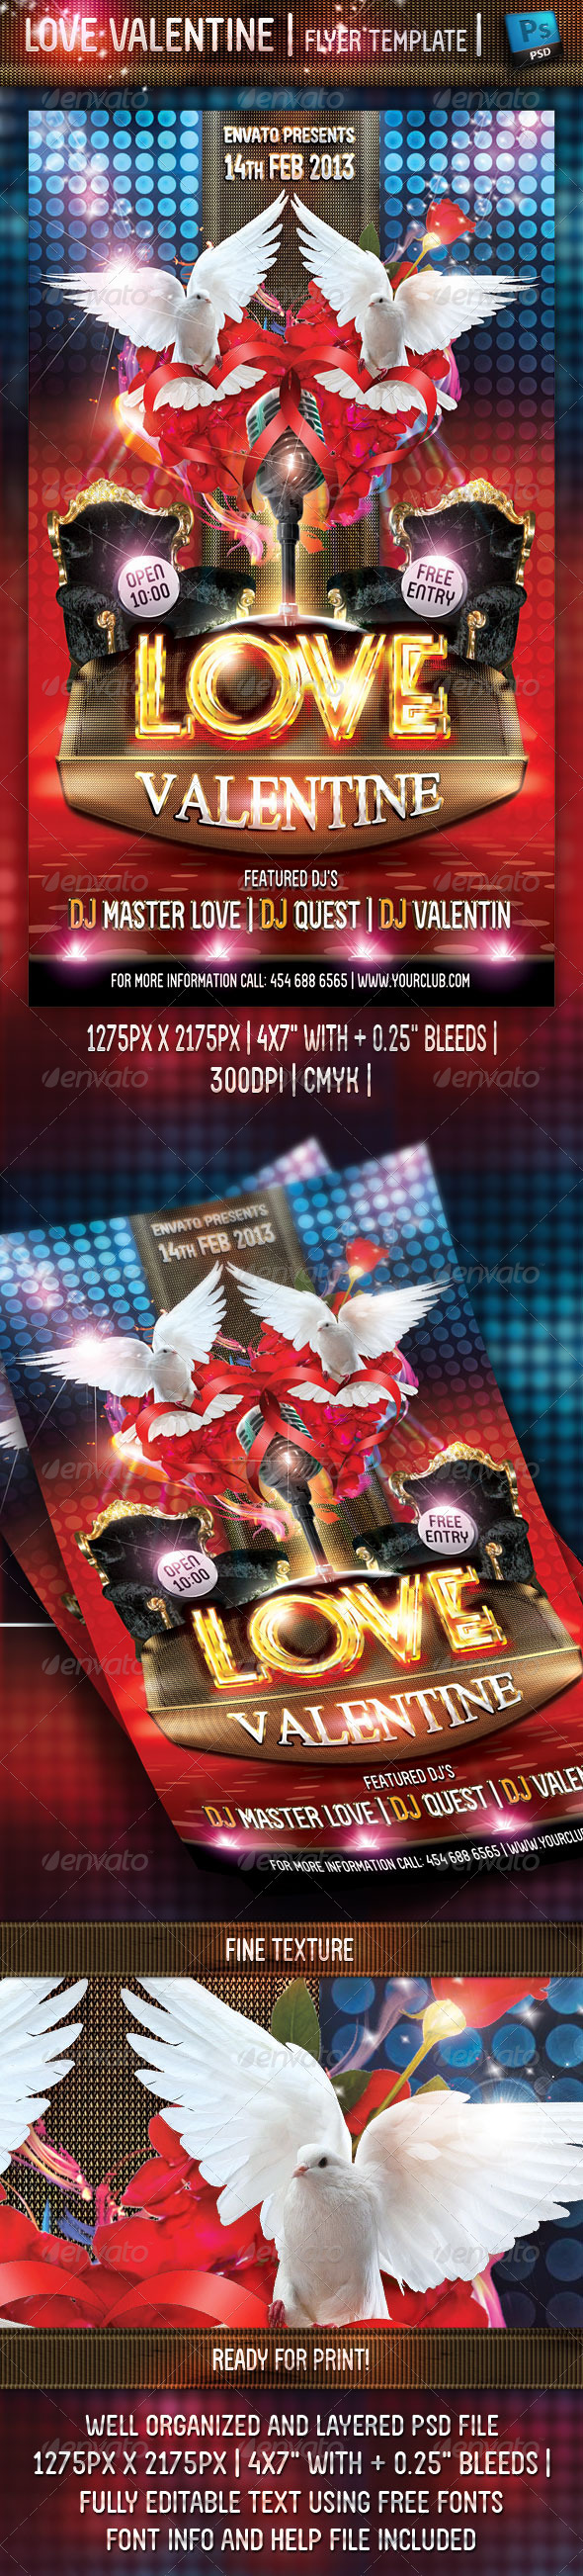 Love Valentine Flyer Template - Clubs & Parties Events